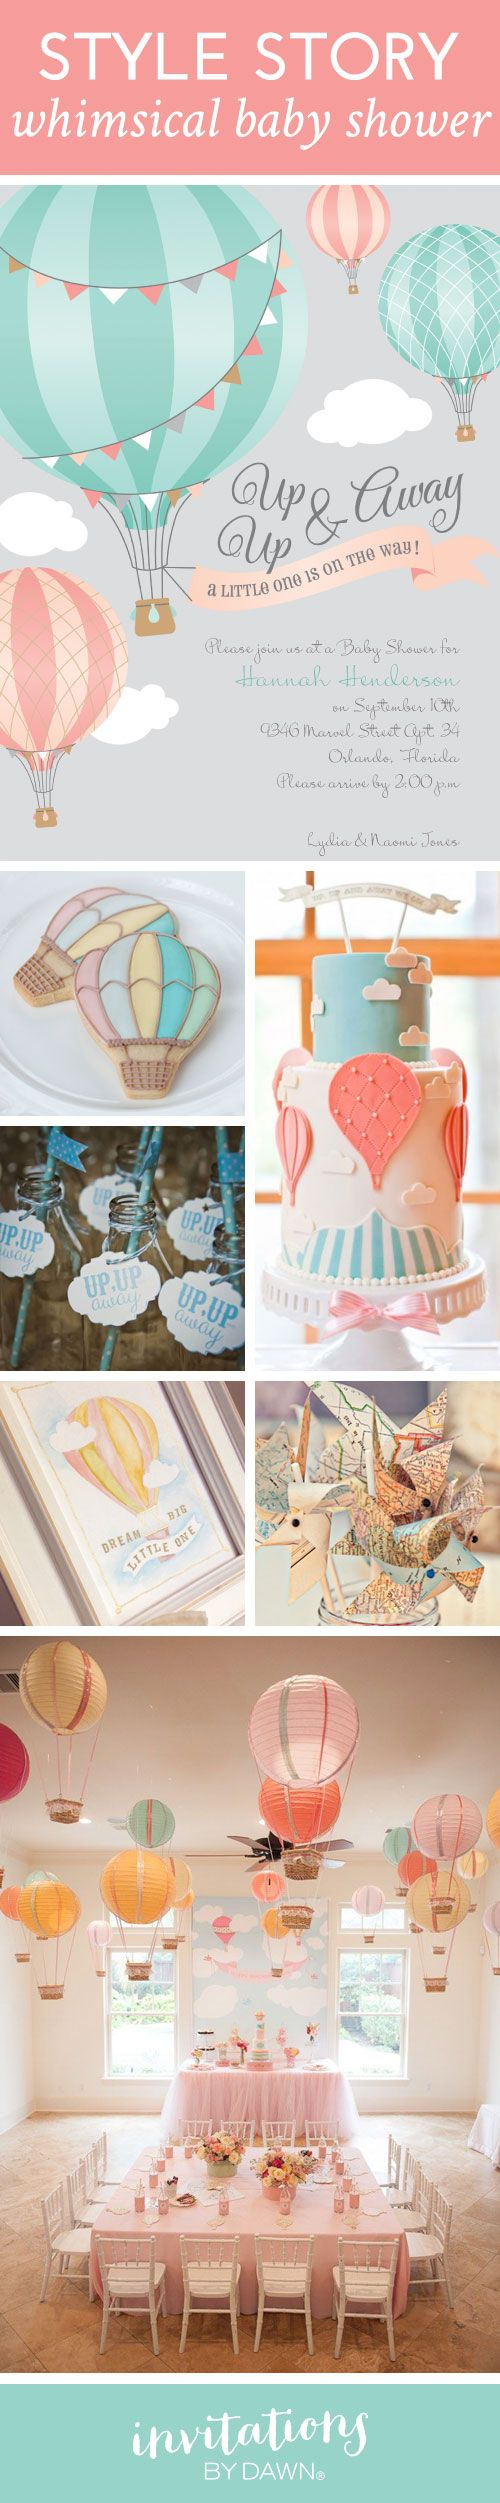 baby shower balloons baby shower themes shower ideas pinwheels baby